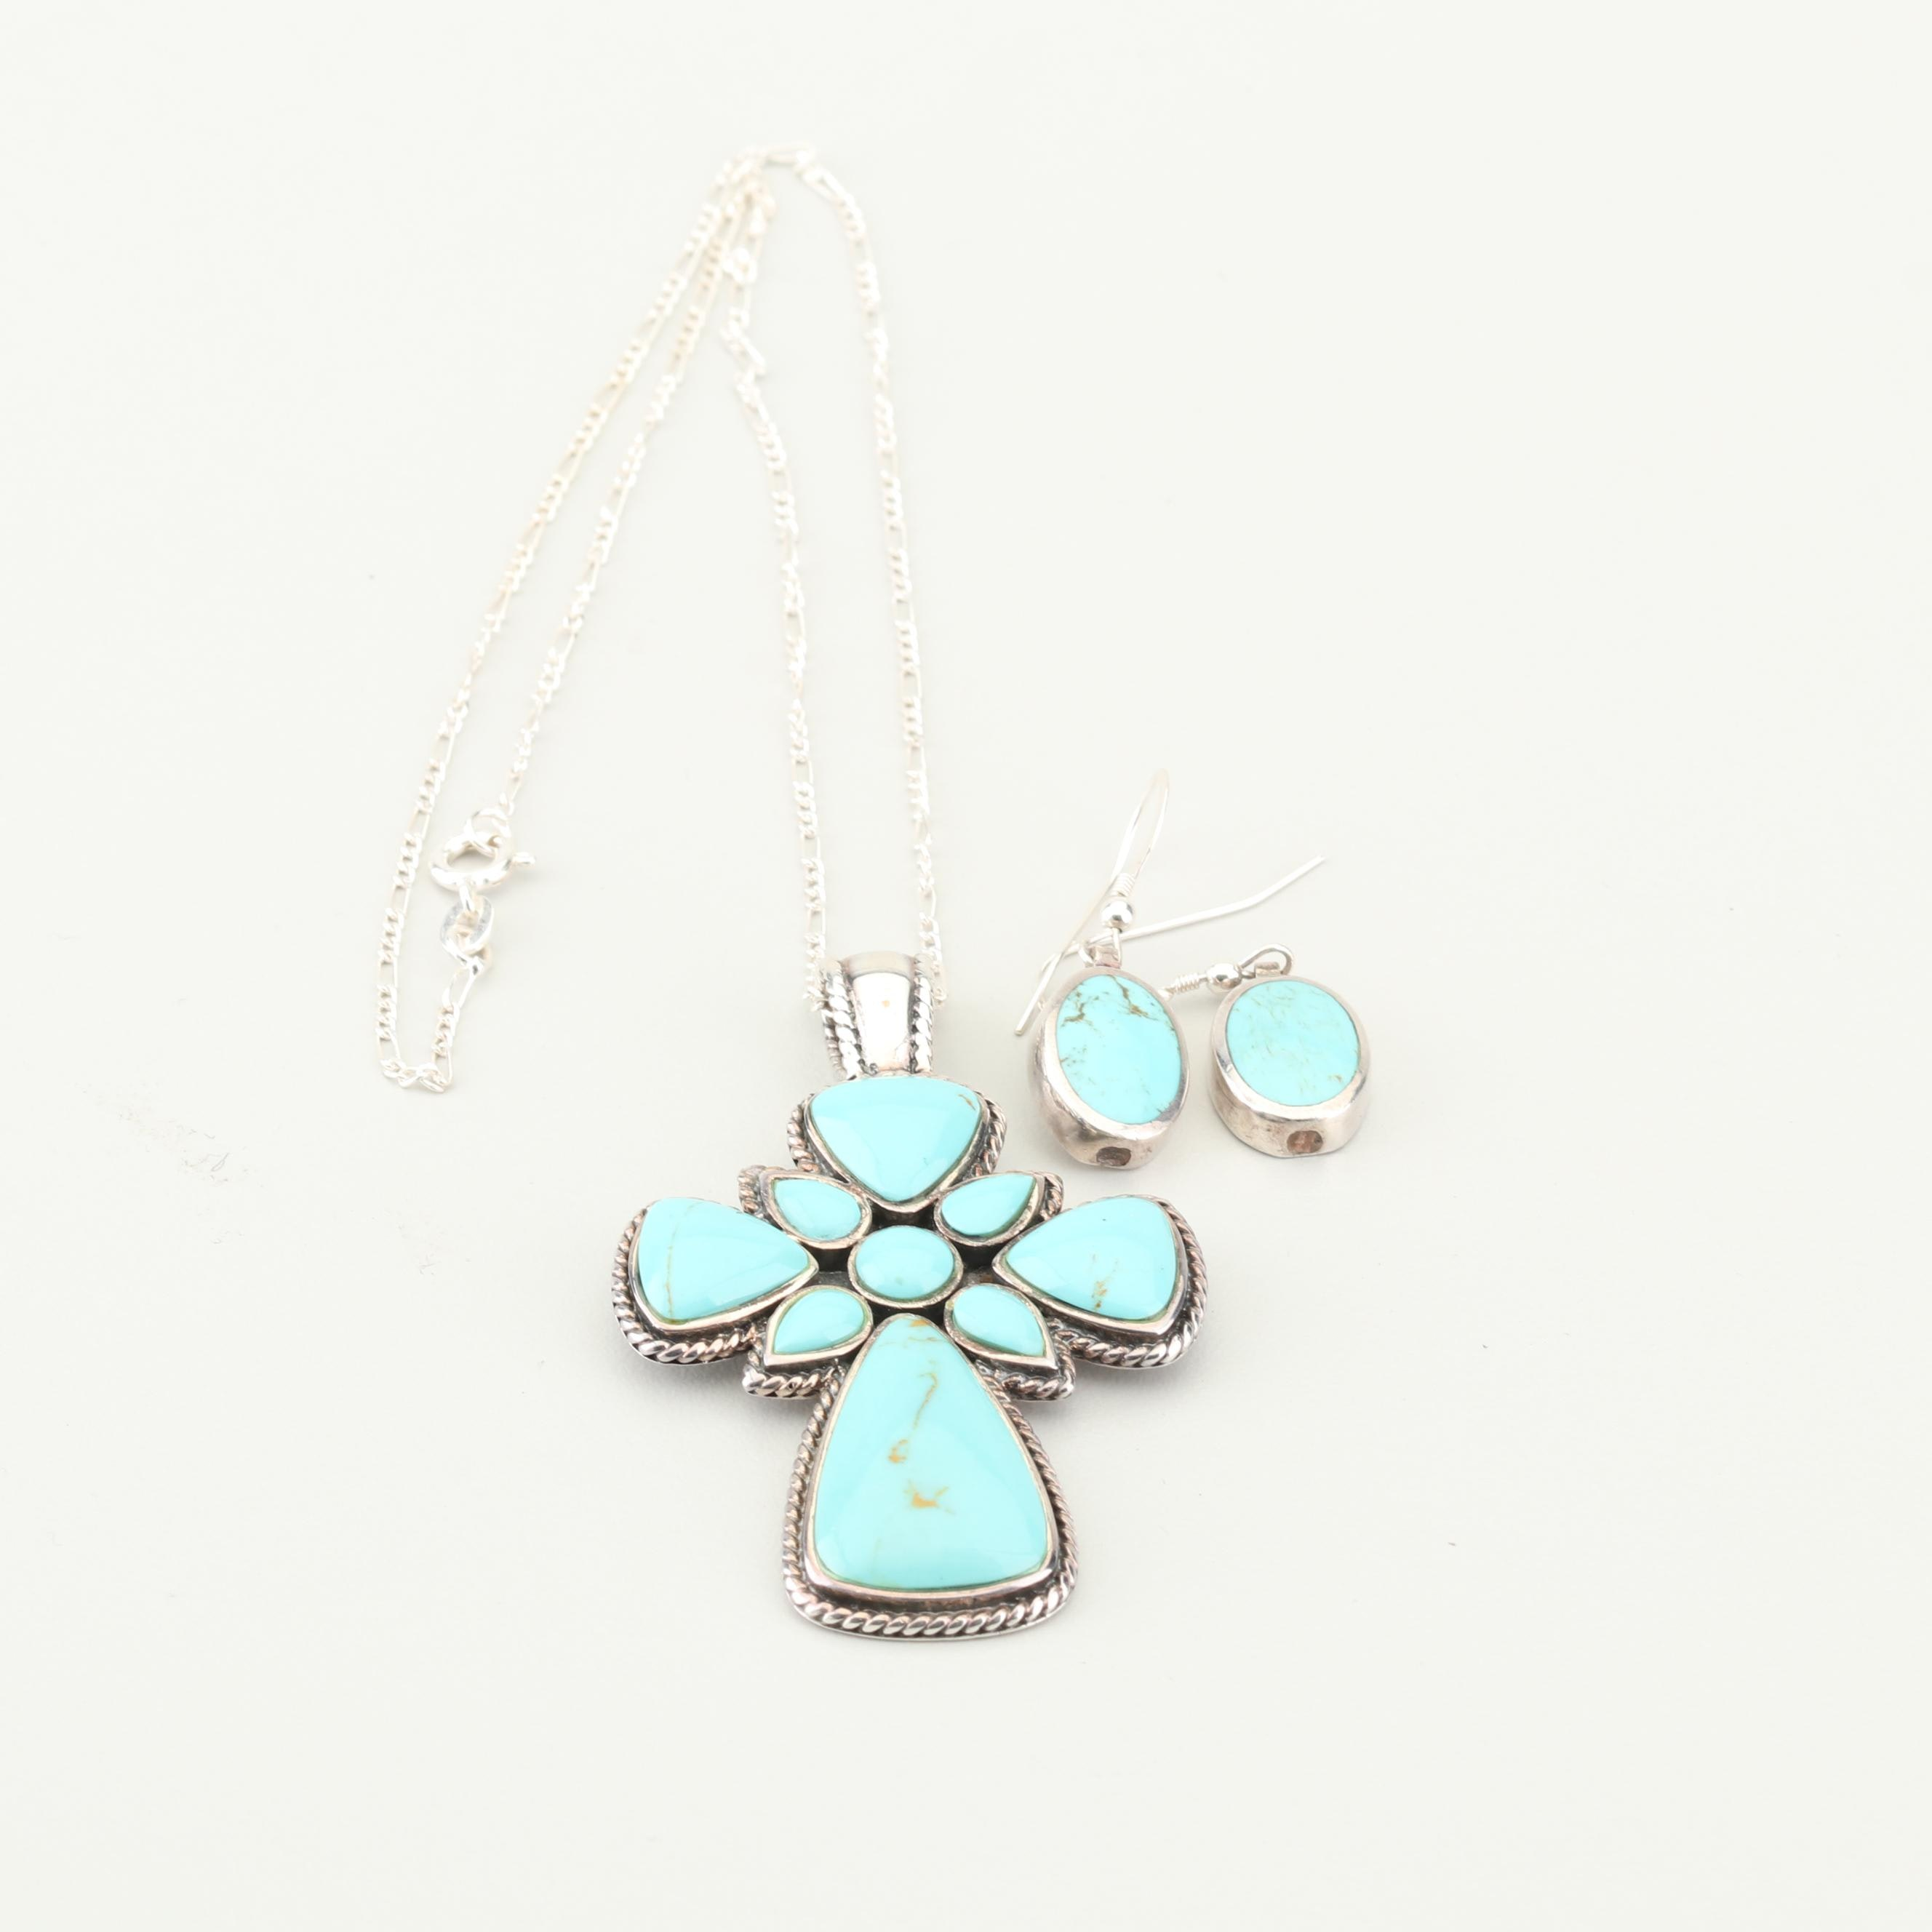 Sterling Silver Turquoise Pendant Necklace and Earrings